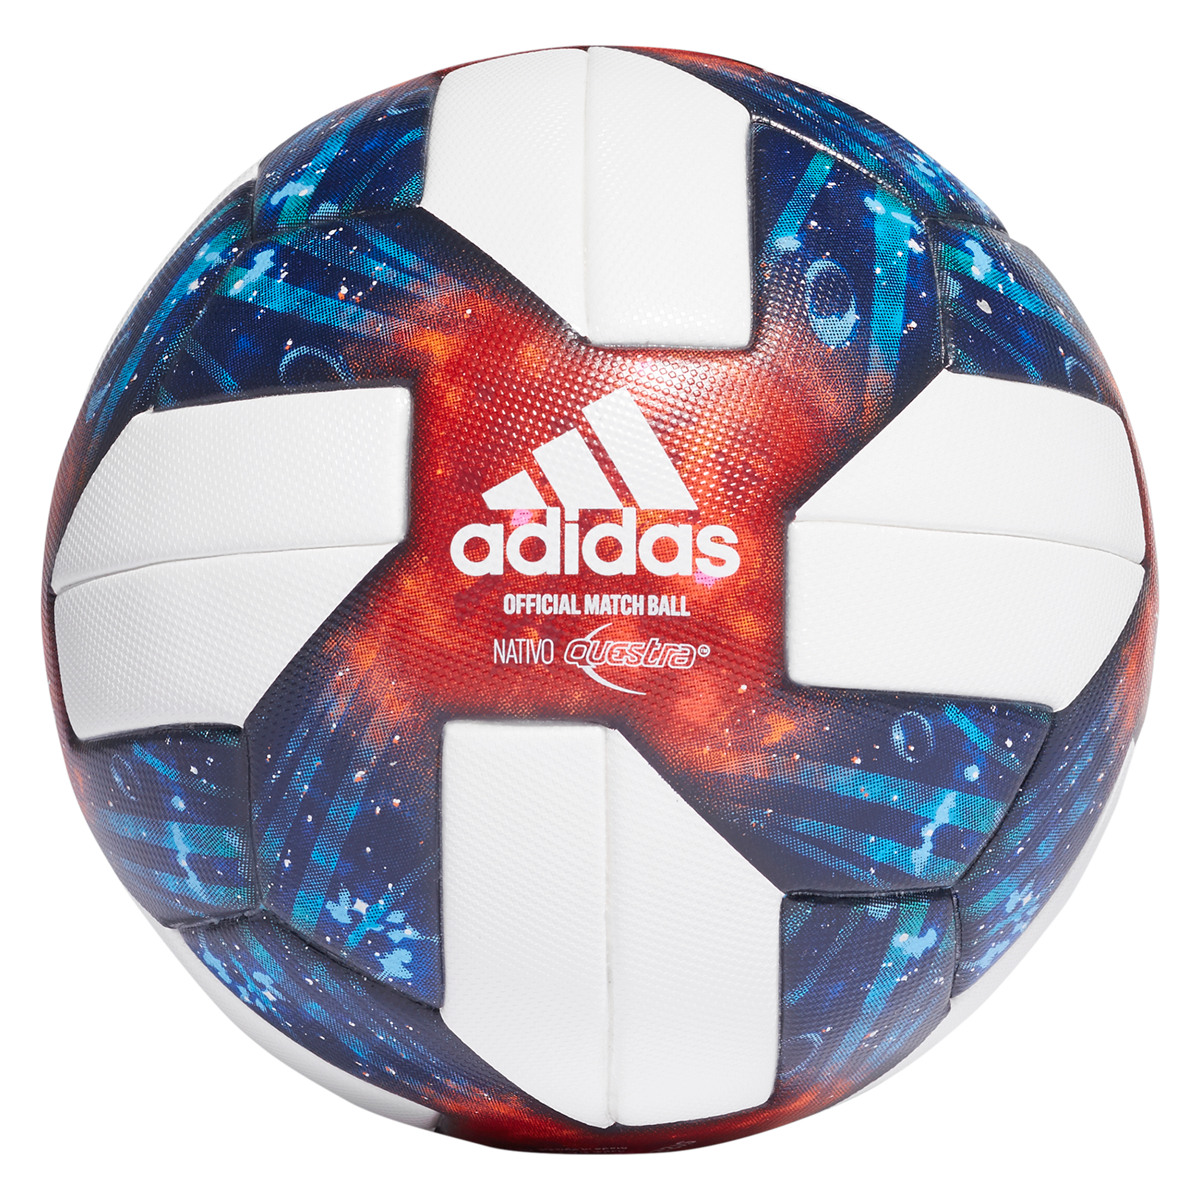 Adidas Fussball Mls Soccer League Omb Grosse 5 Weiss Blau